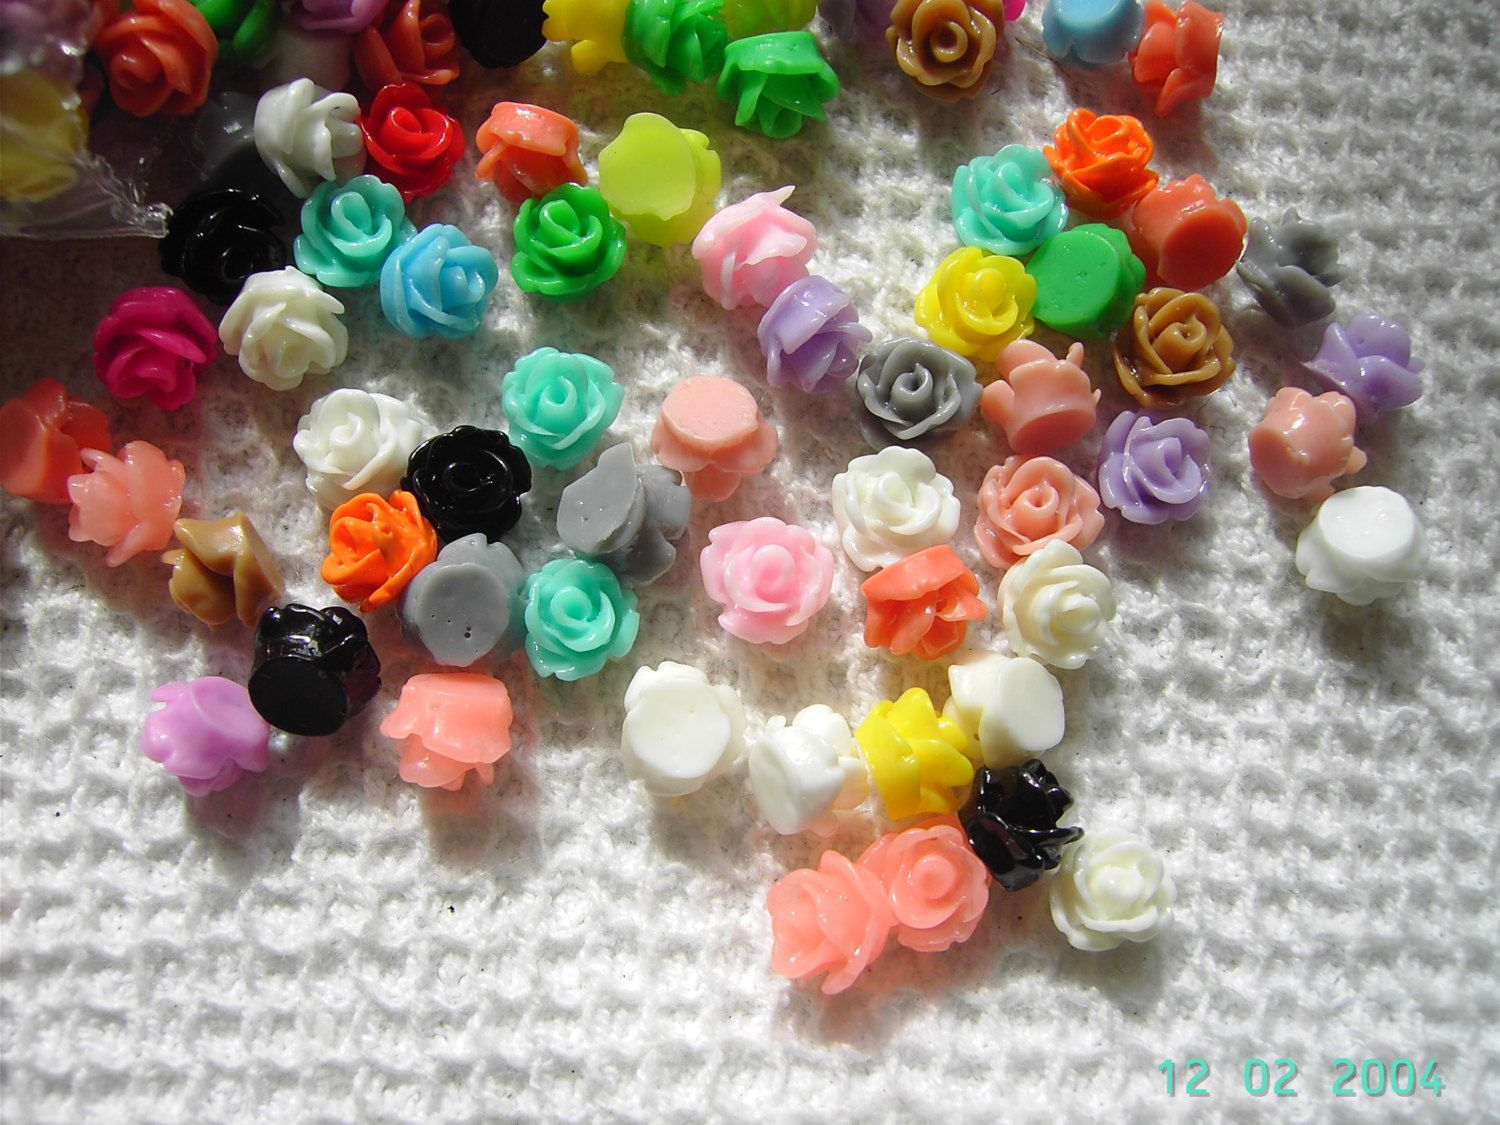 50 Resin Rose Bud Cabochons 6mm mixed colours | Rose buds, Color mixing, Beaded flowers